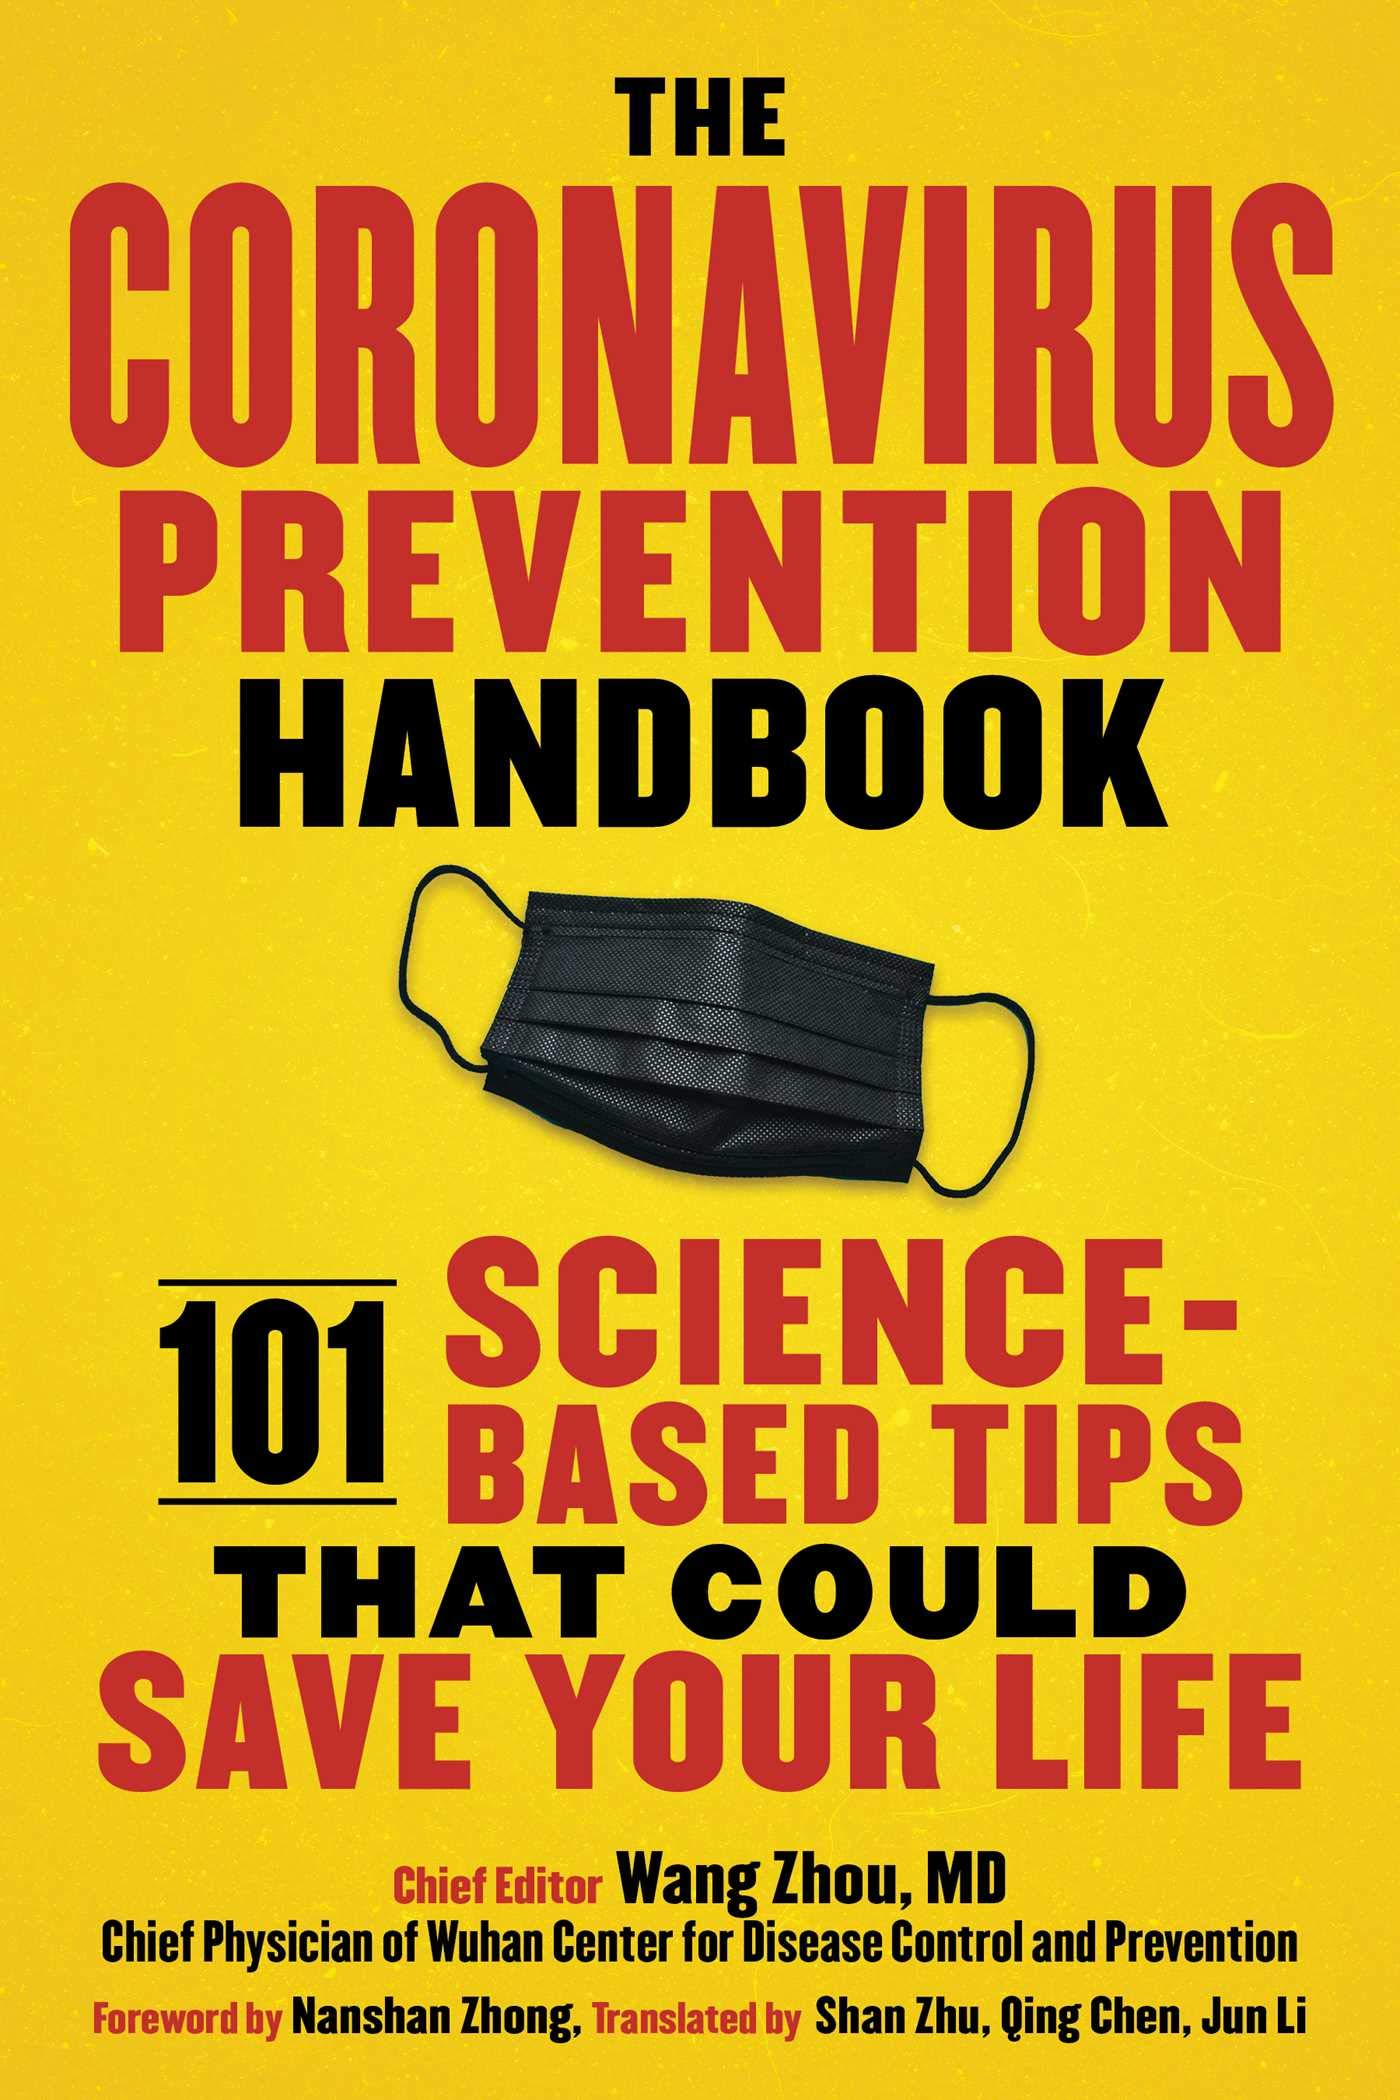 Coronavirus Prevention Handbook: 101 Science-Based Tips That Could Save Your Life